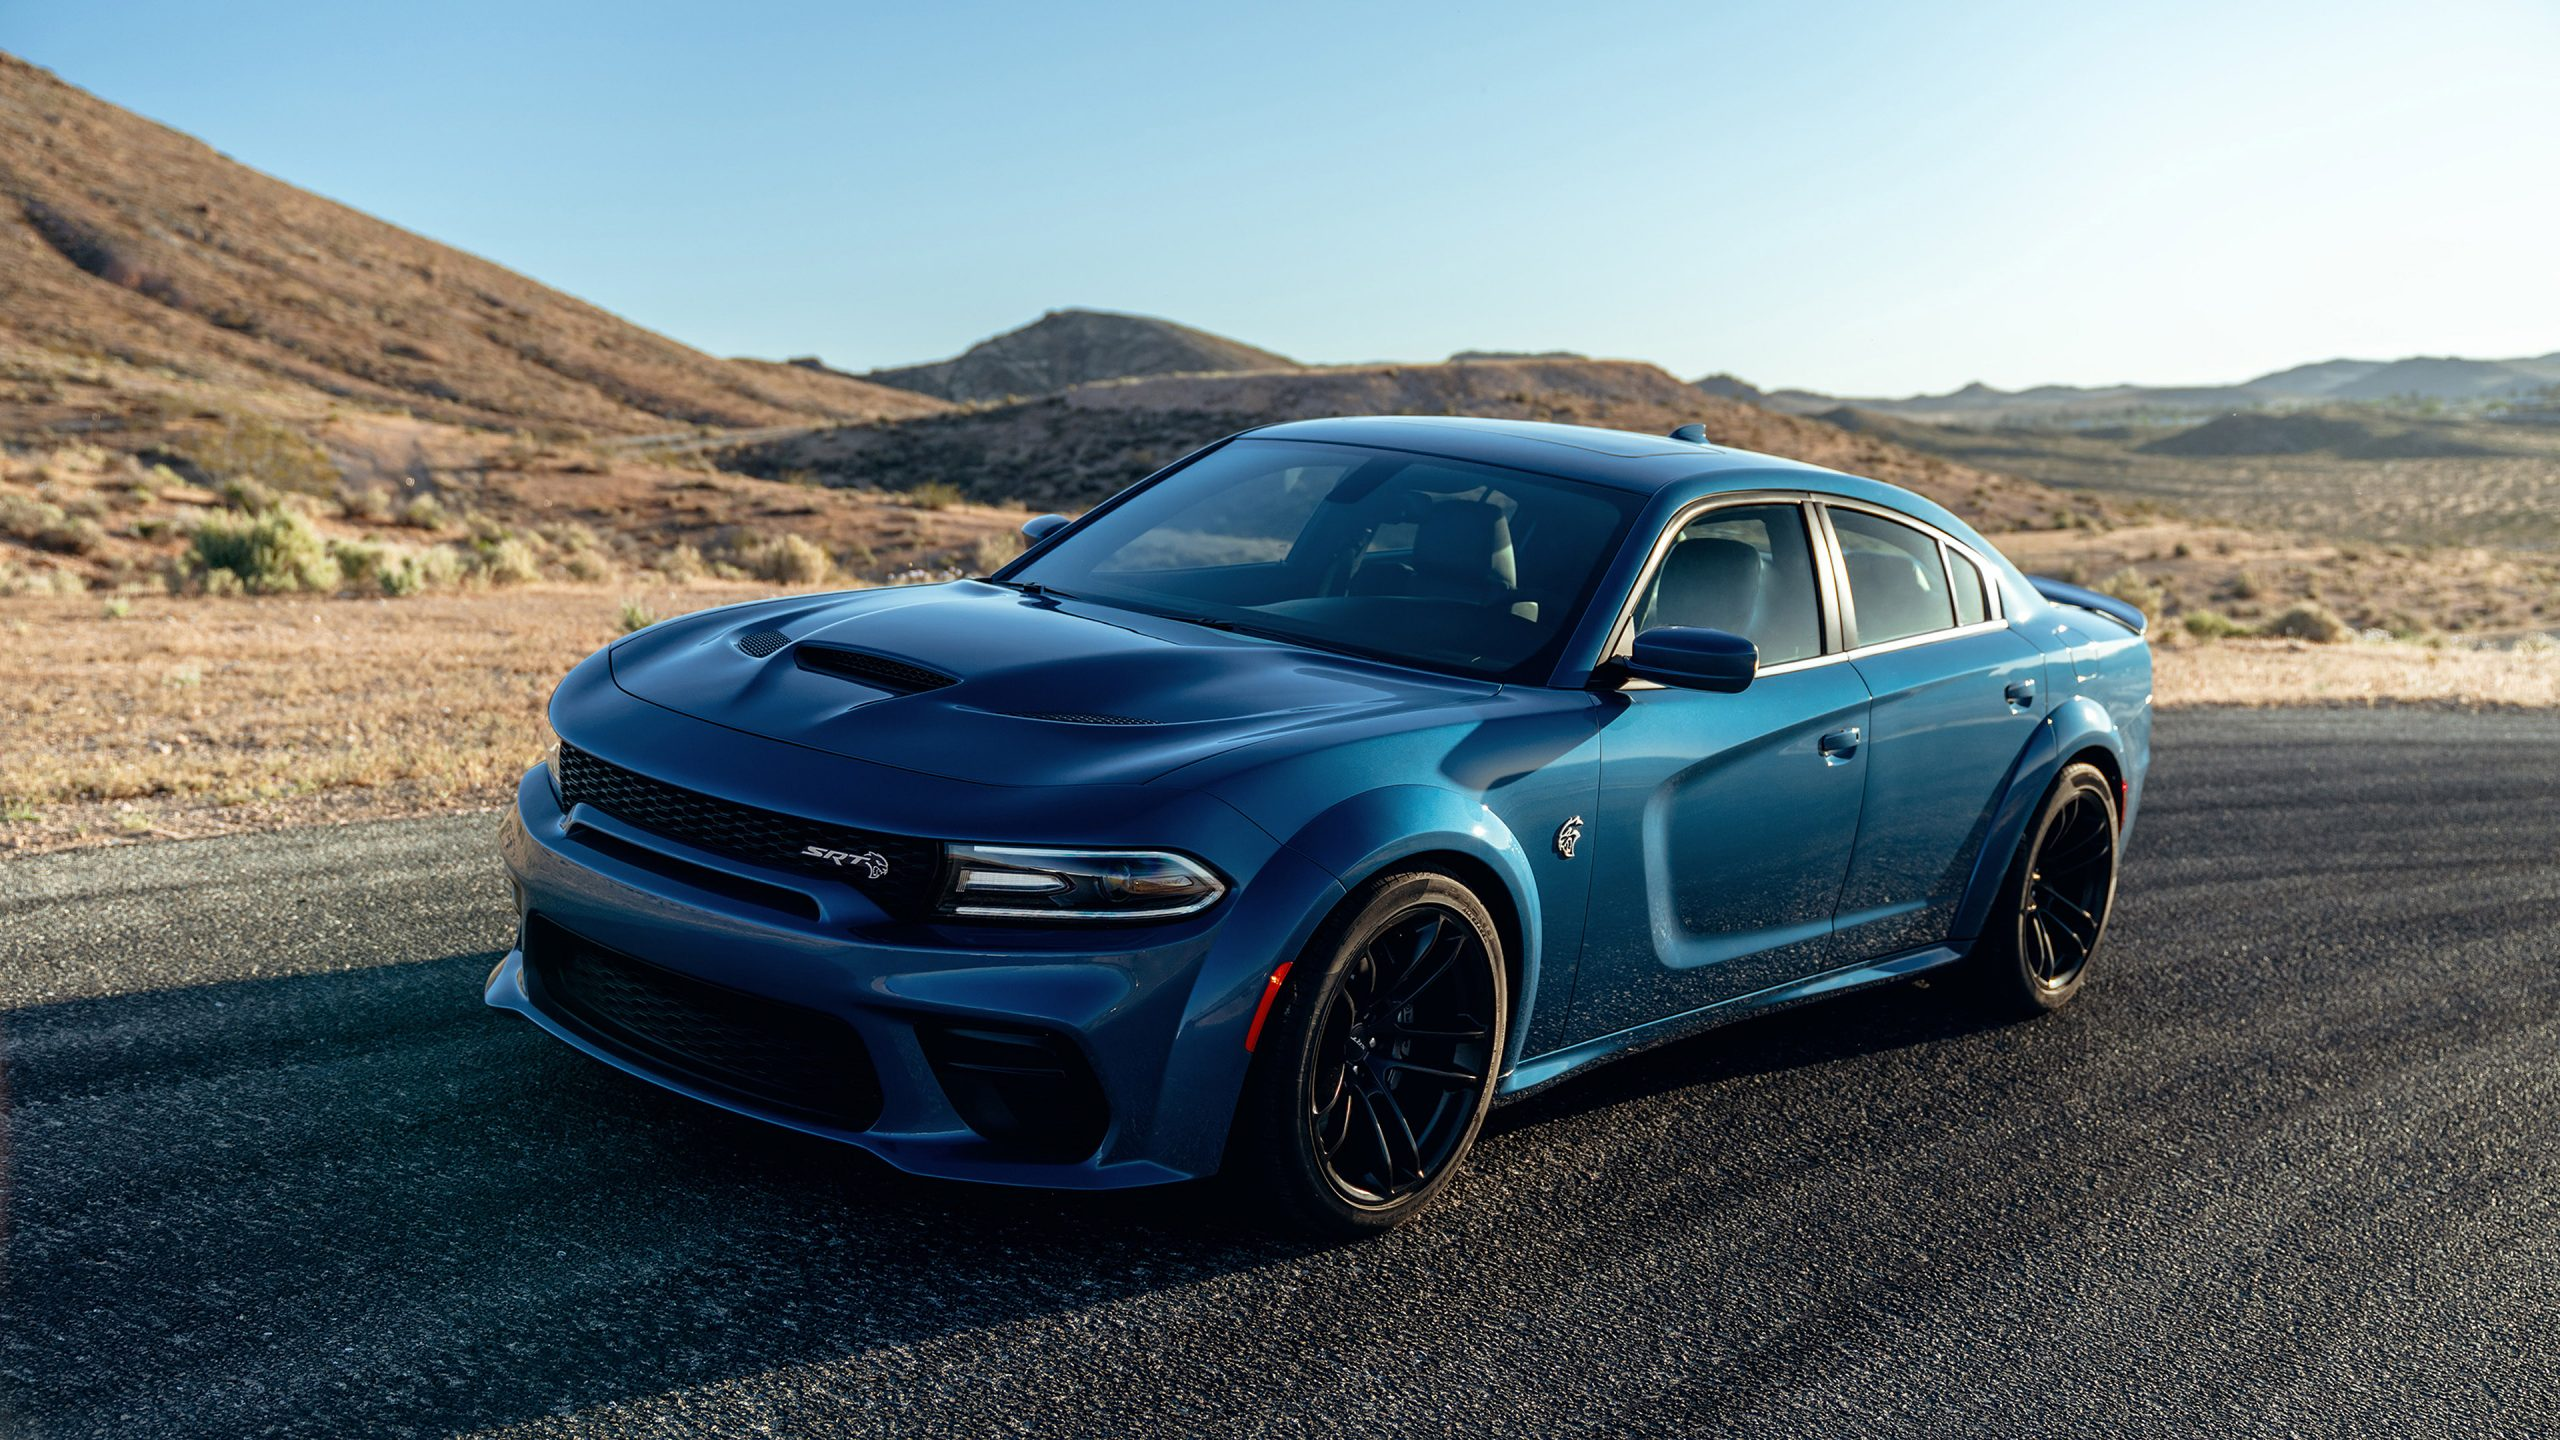 Dodge U.S Sales Figures